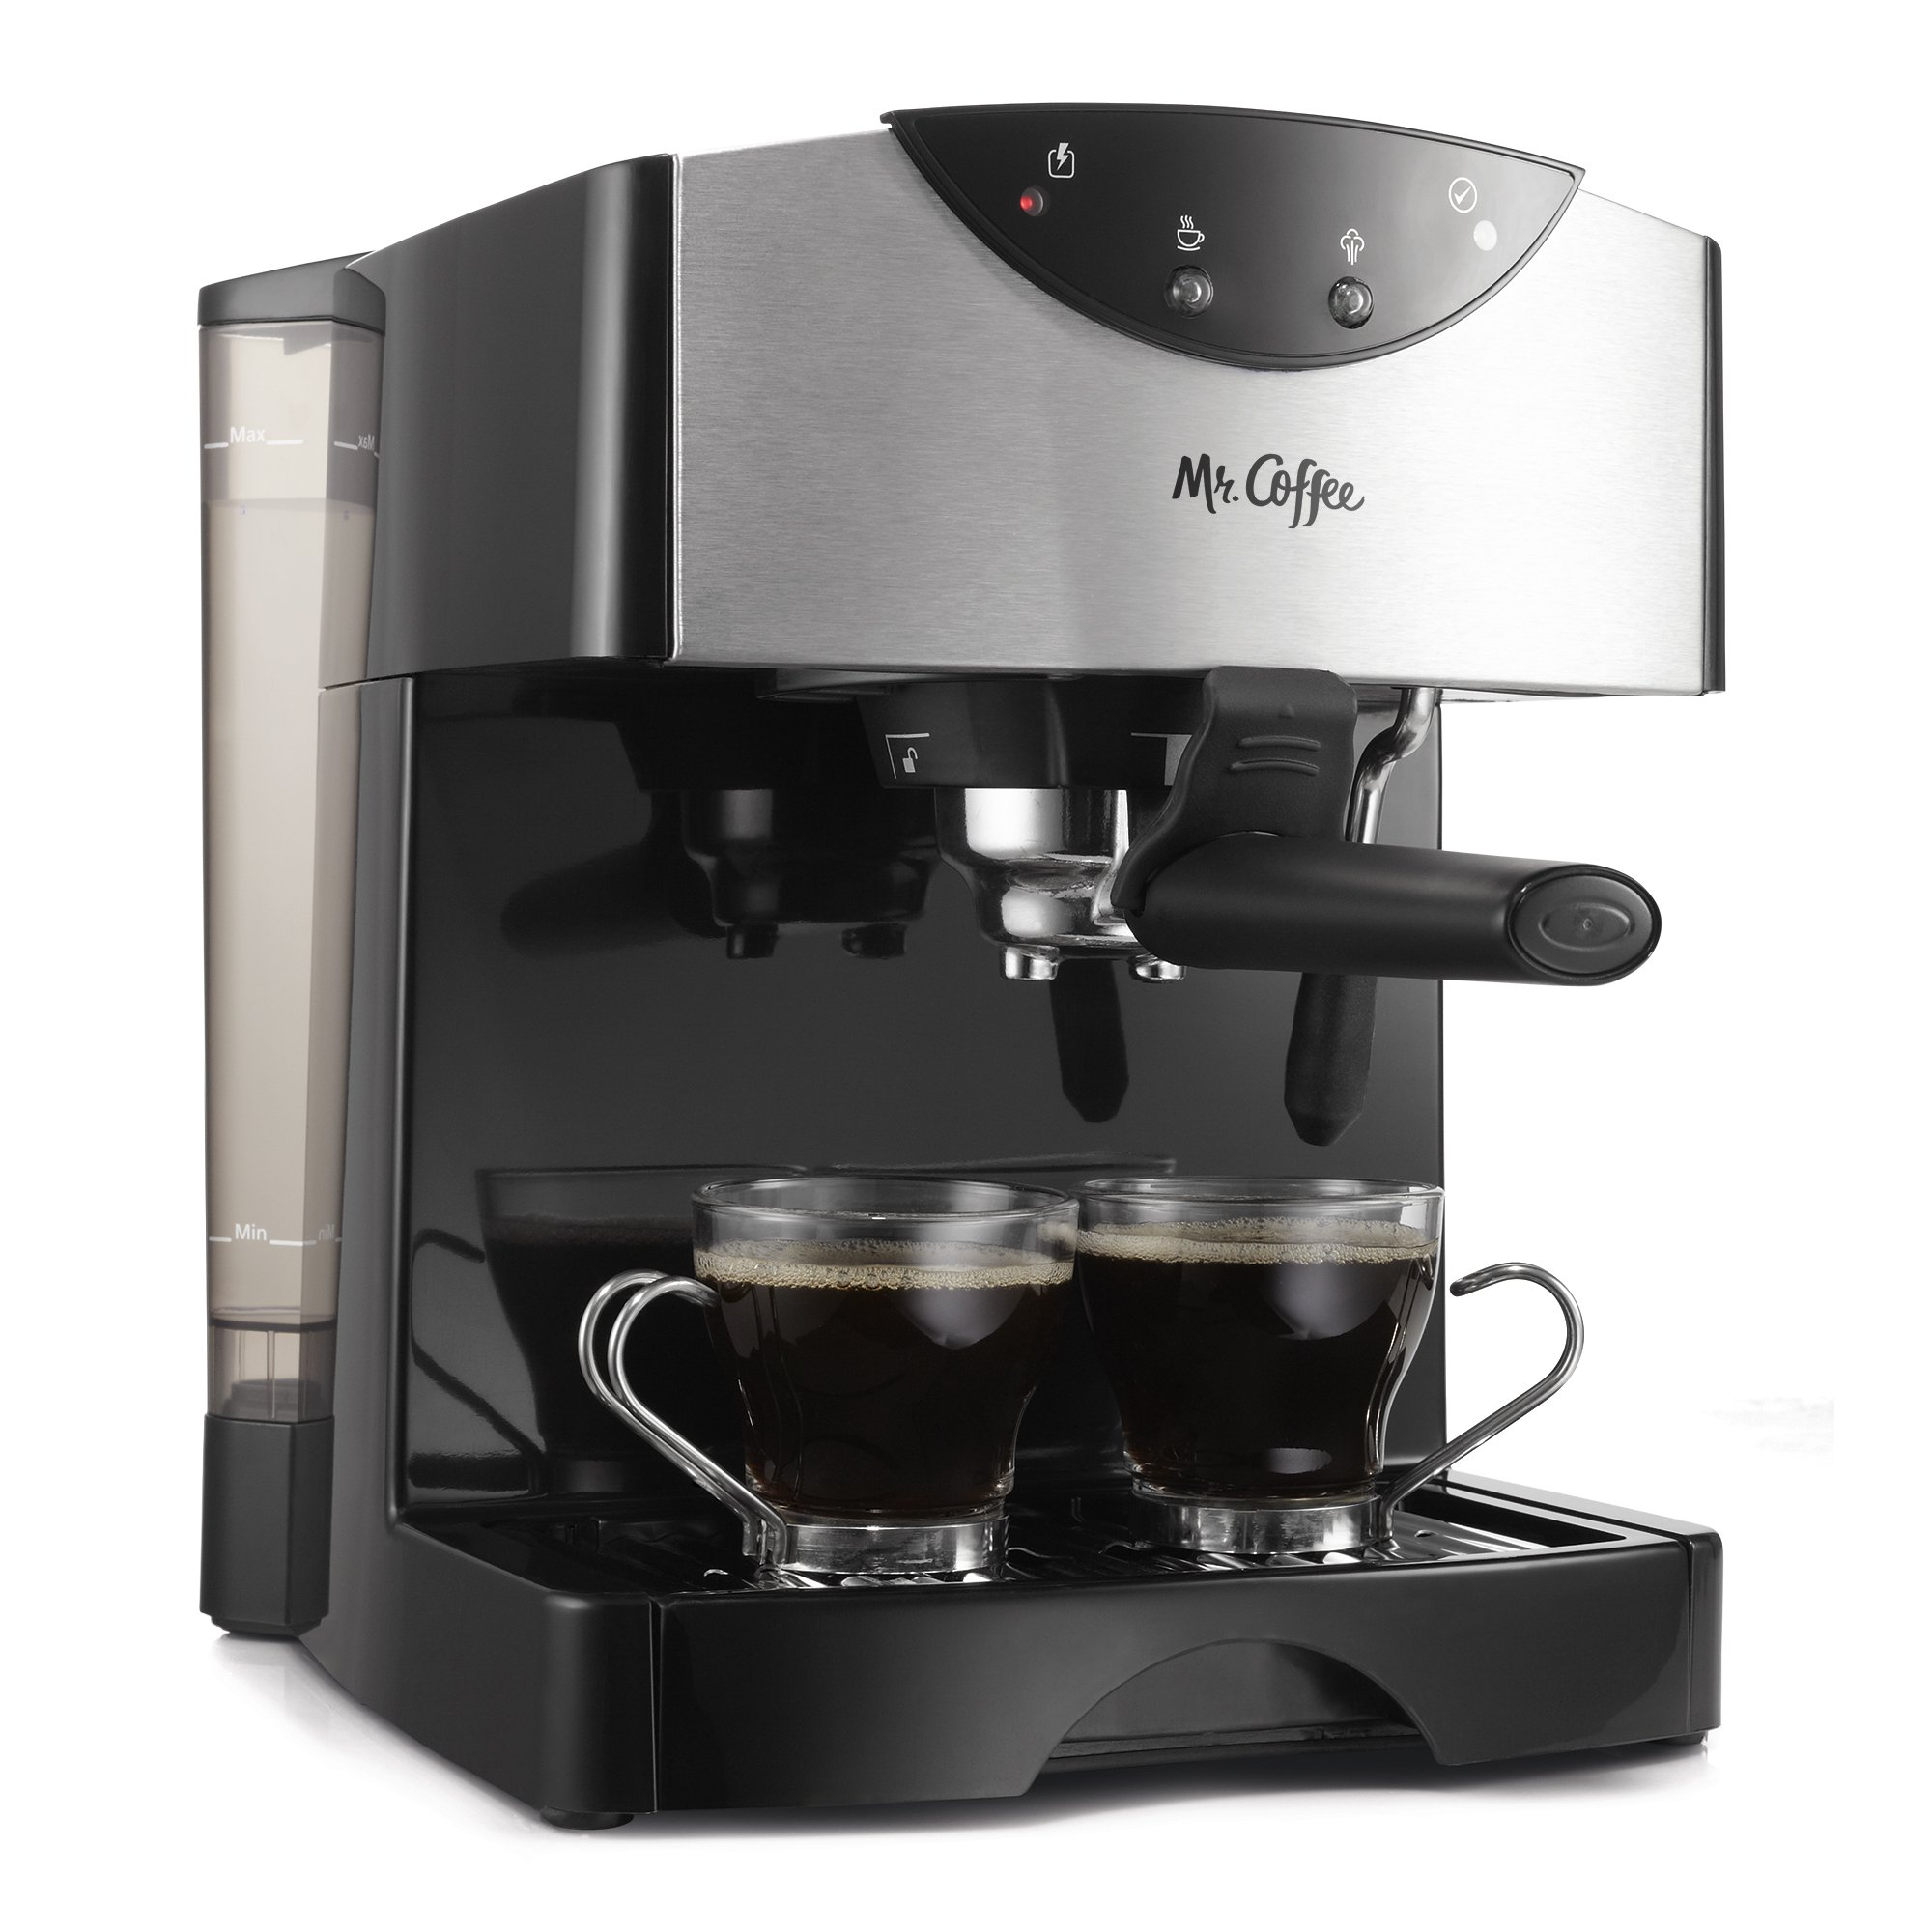 Mr. Coffee Automatic Dual Shot Espresso/Cappuccino System